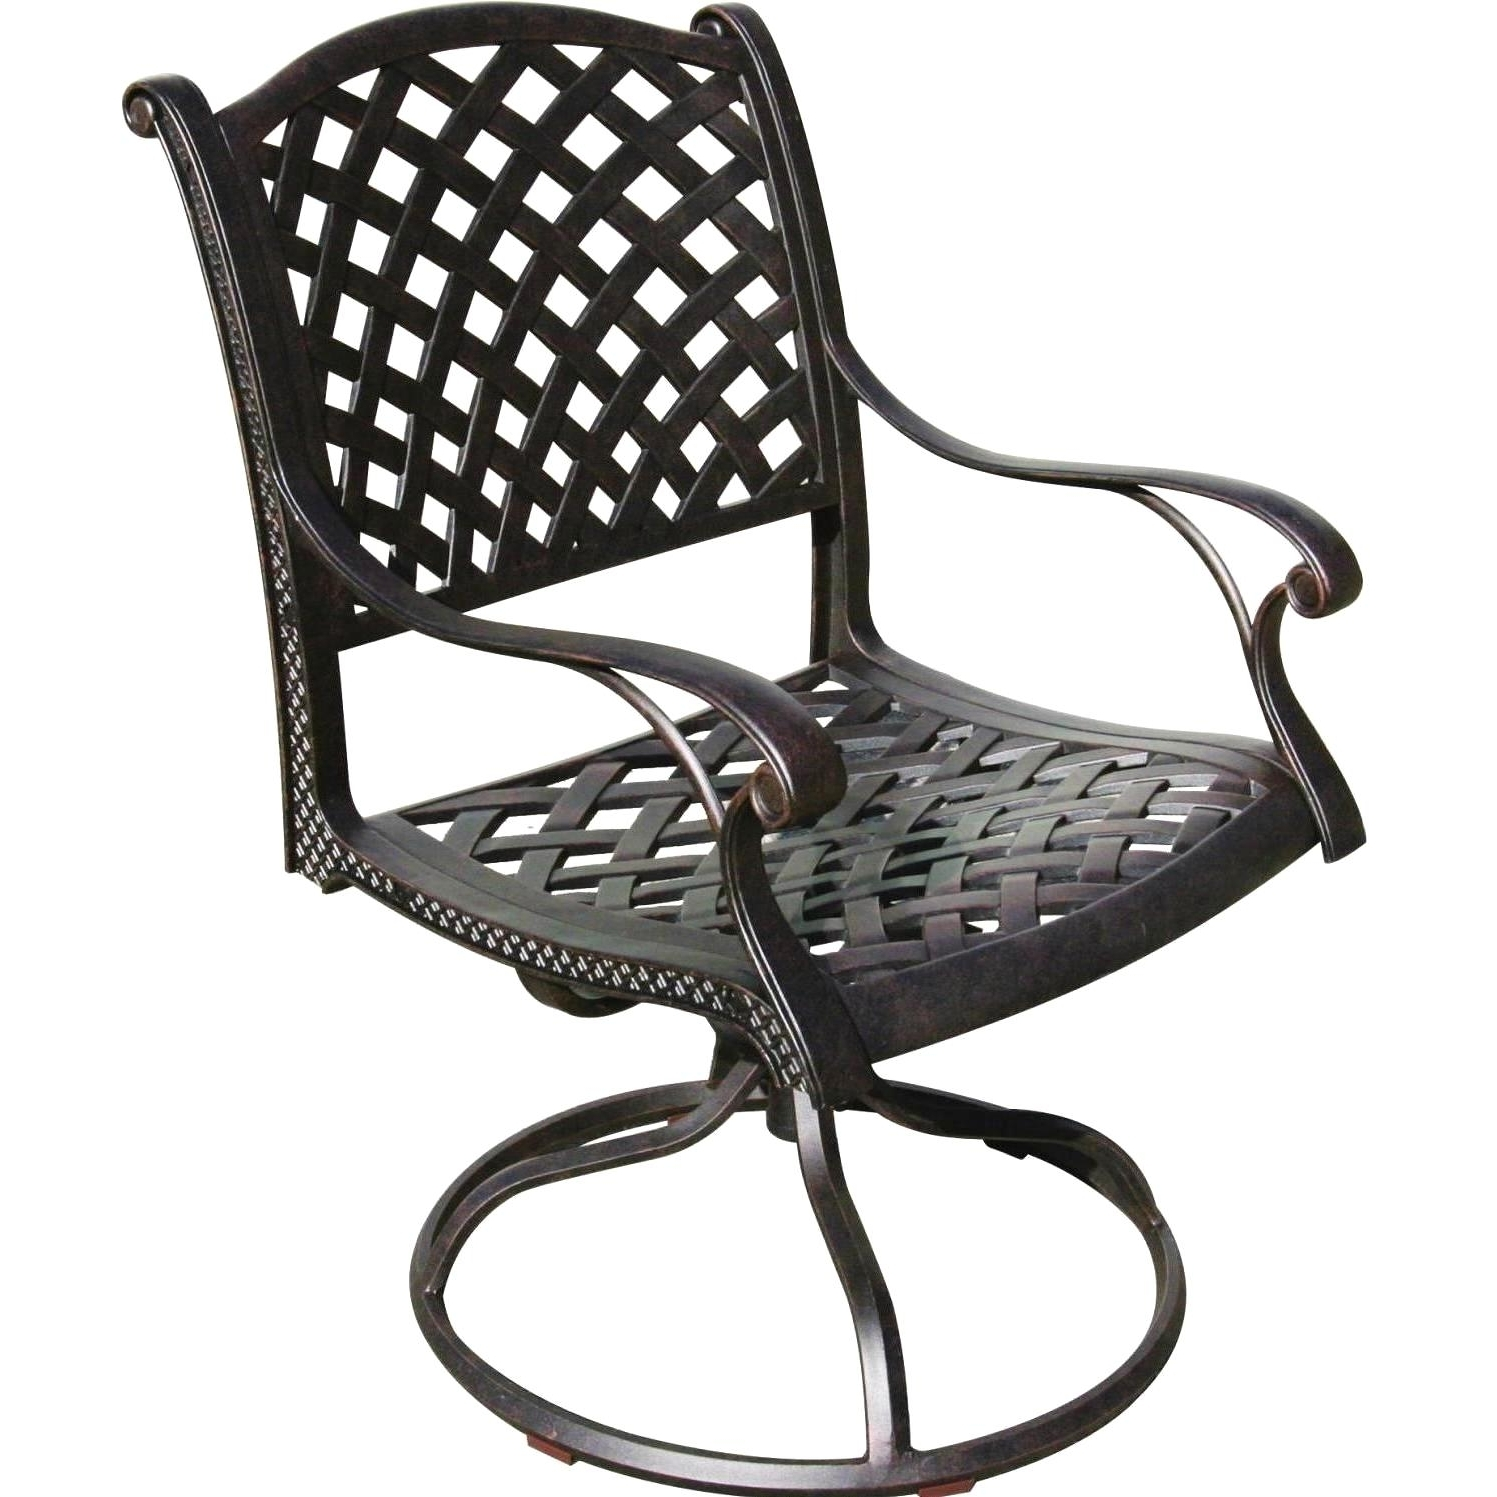 Widely Used Old Fashioned Rocking Chairs Inside Adorable Patio Swivel Chairs High Chair Swivel Rocker Outdoor Dining (View 17 of 20)